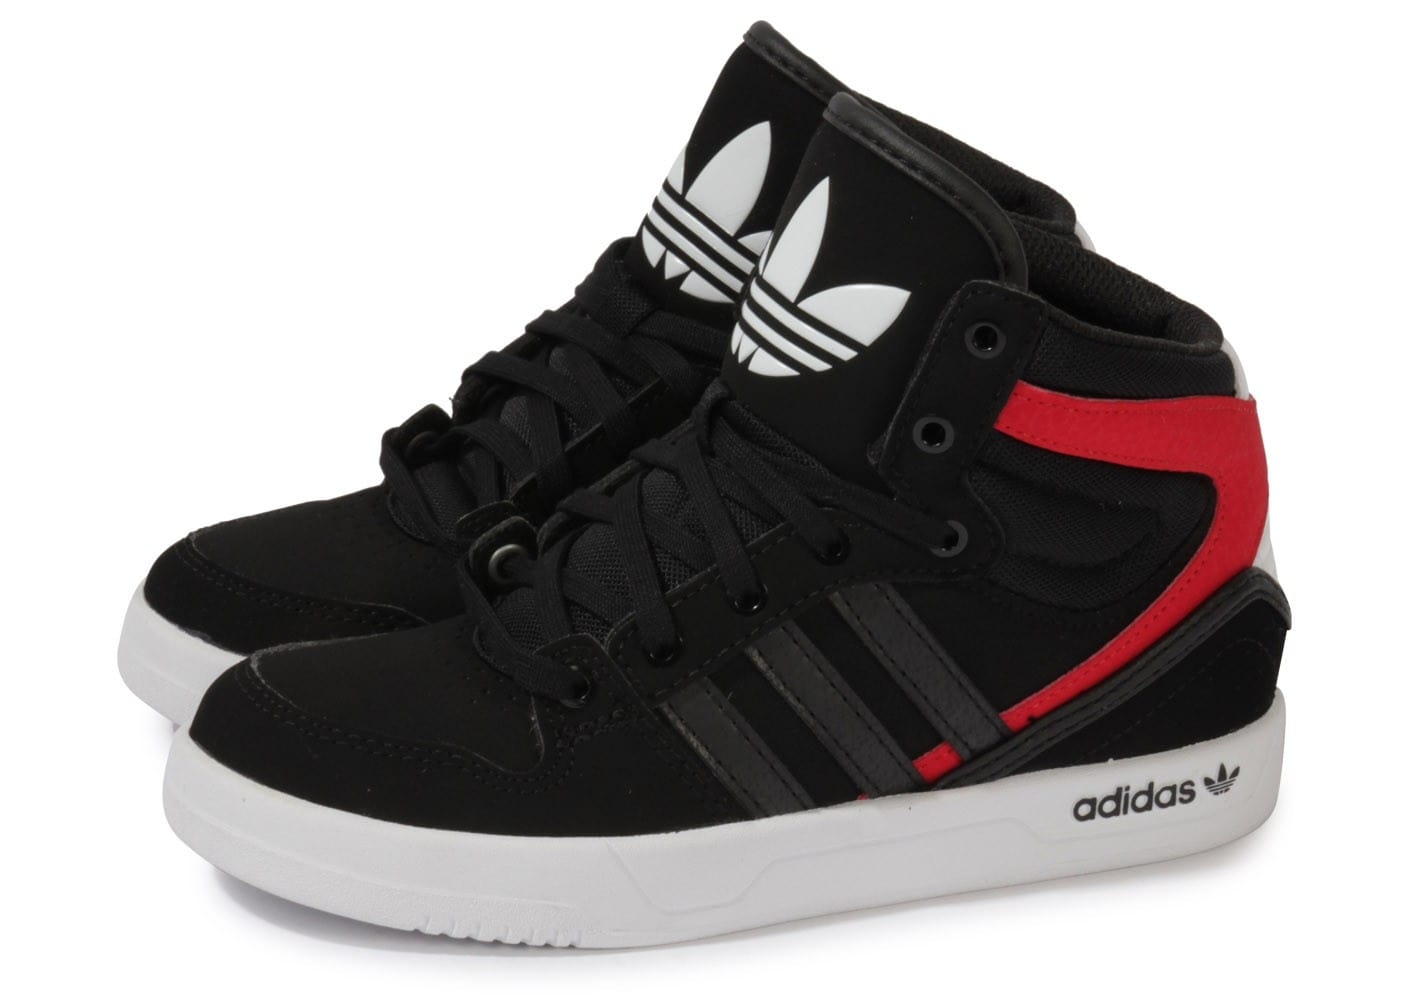 adidas court attitude enfant noire chaussures adidas chausport. Black Bedroom Furniture Sets. Home Design Ideas